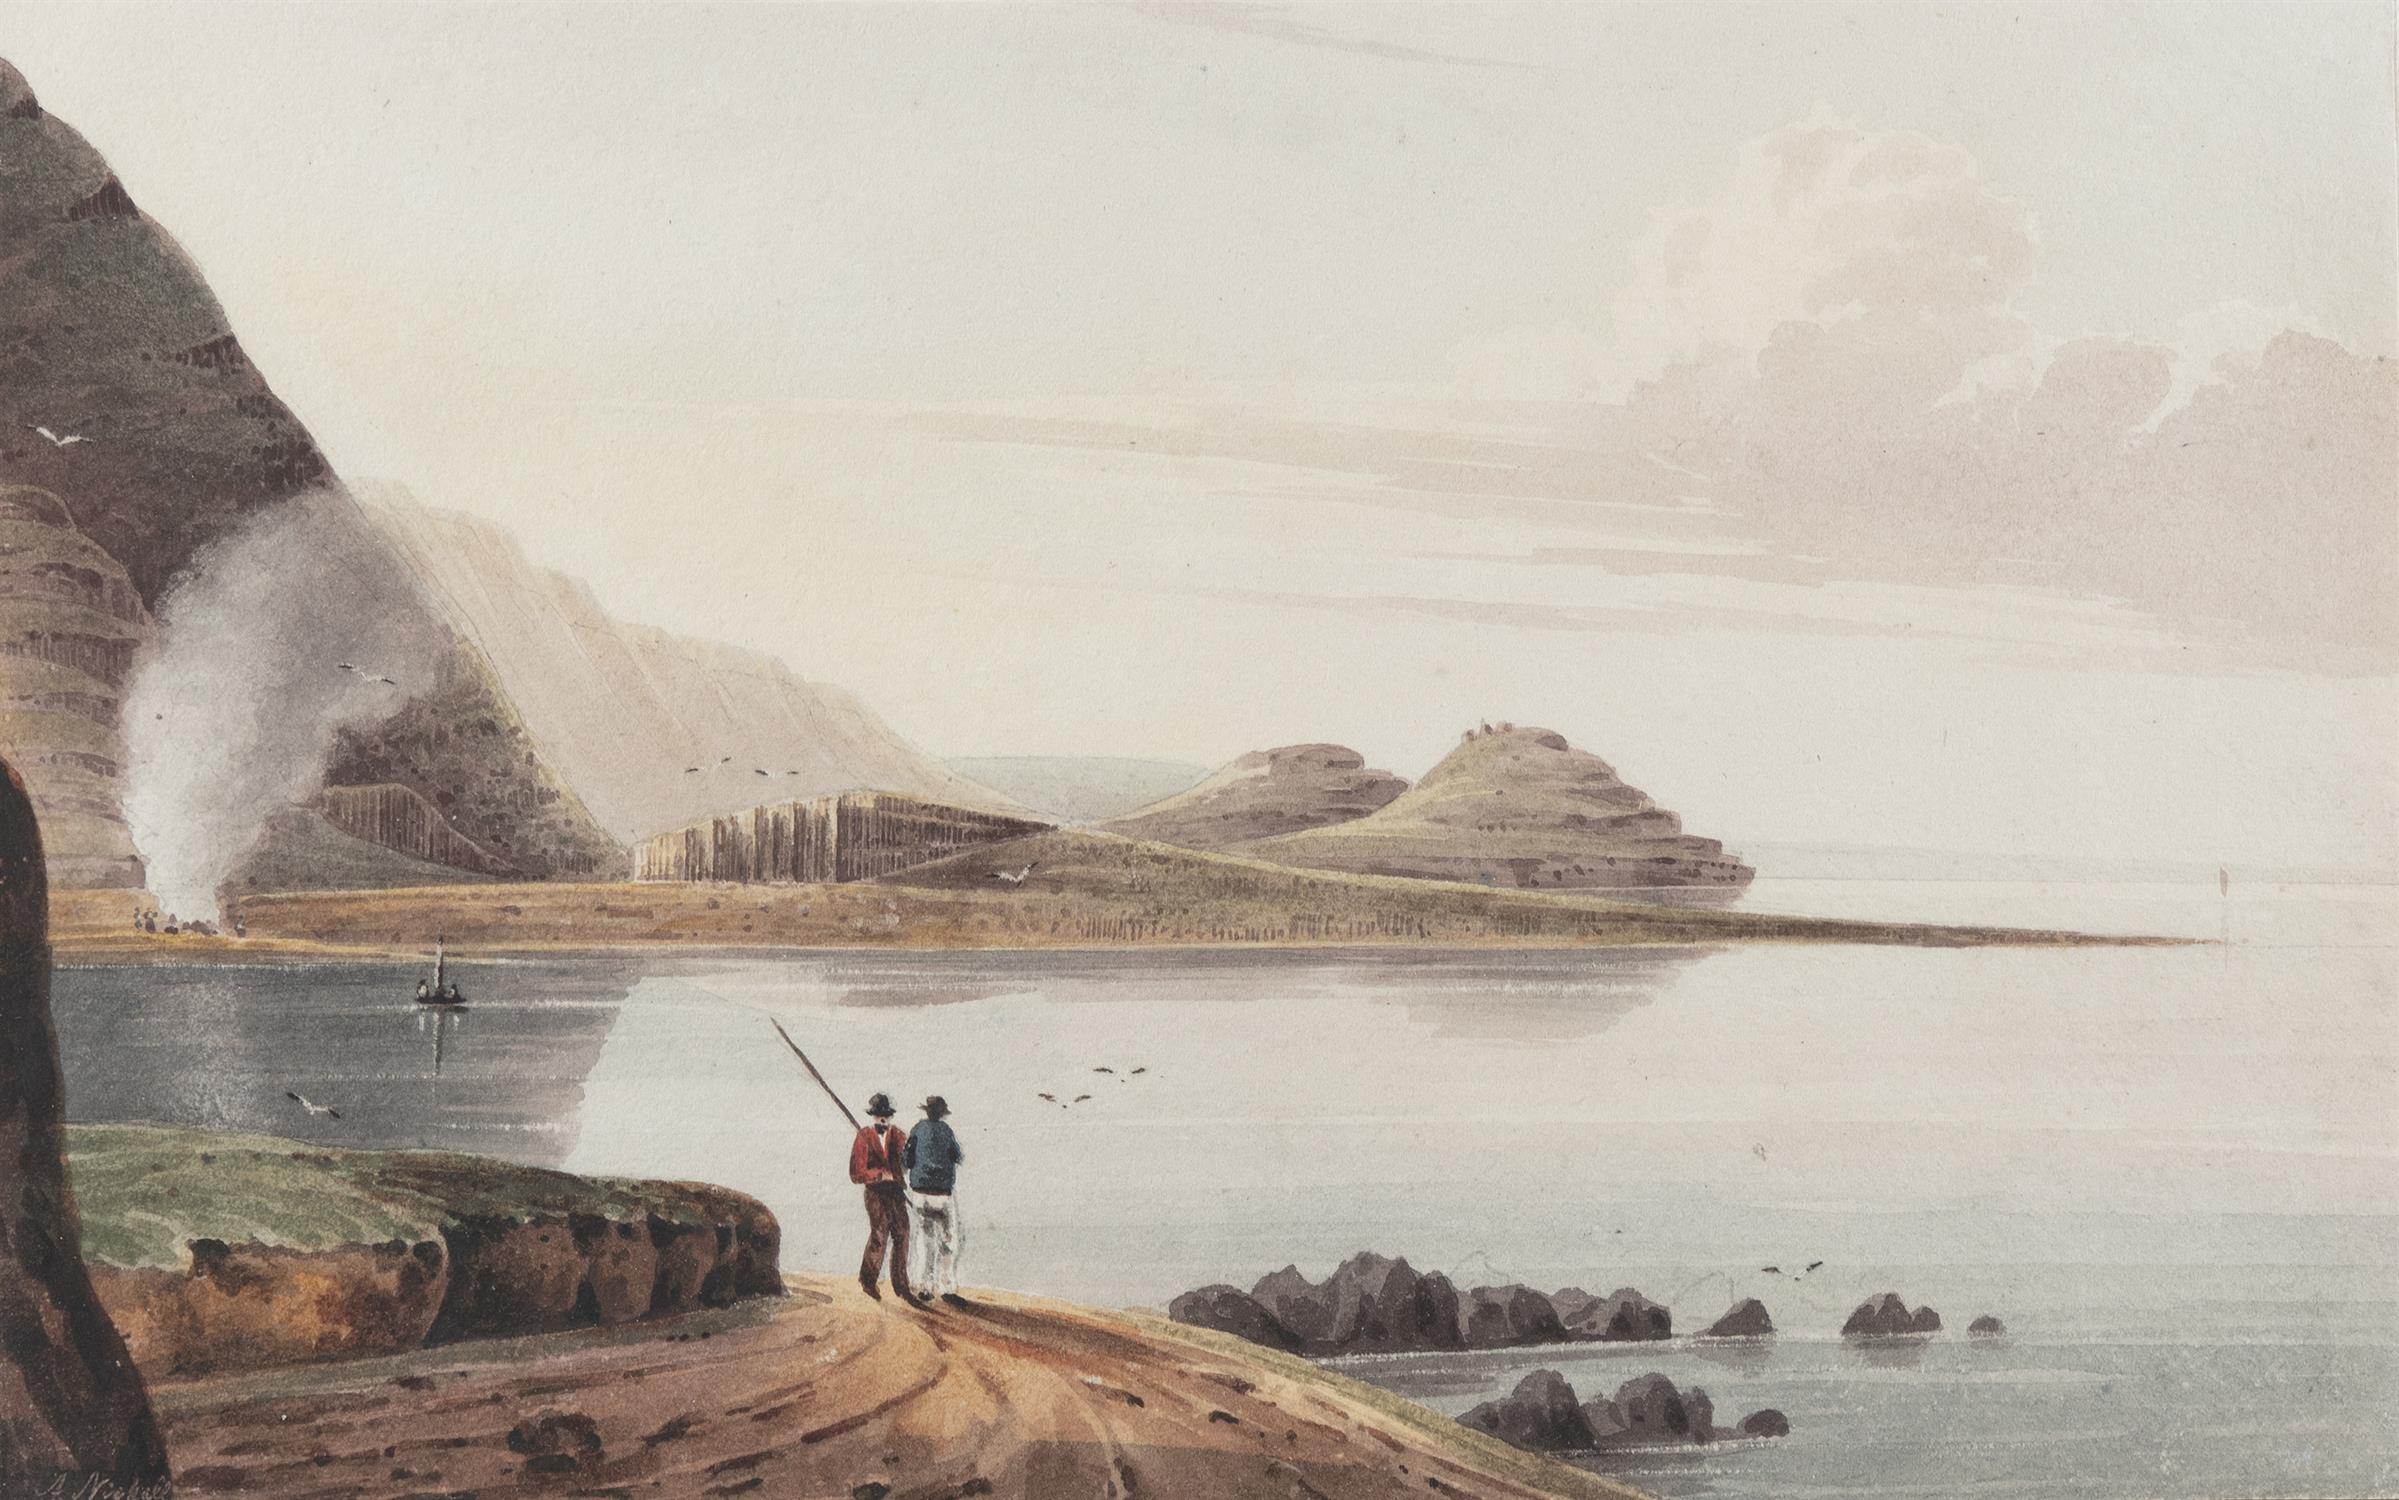 Andrew Nicholl RHA (1804-1886) From the East, Bay of Port Noffer; the 'Loom', 'Giant's Causeway'